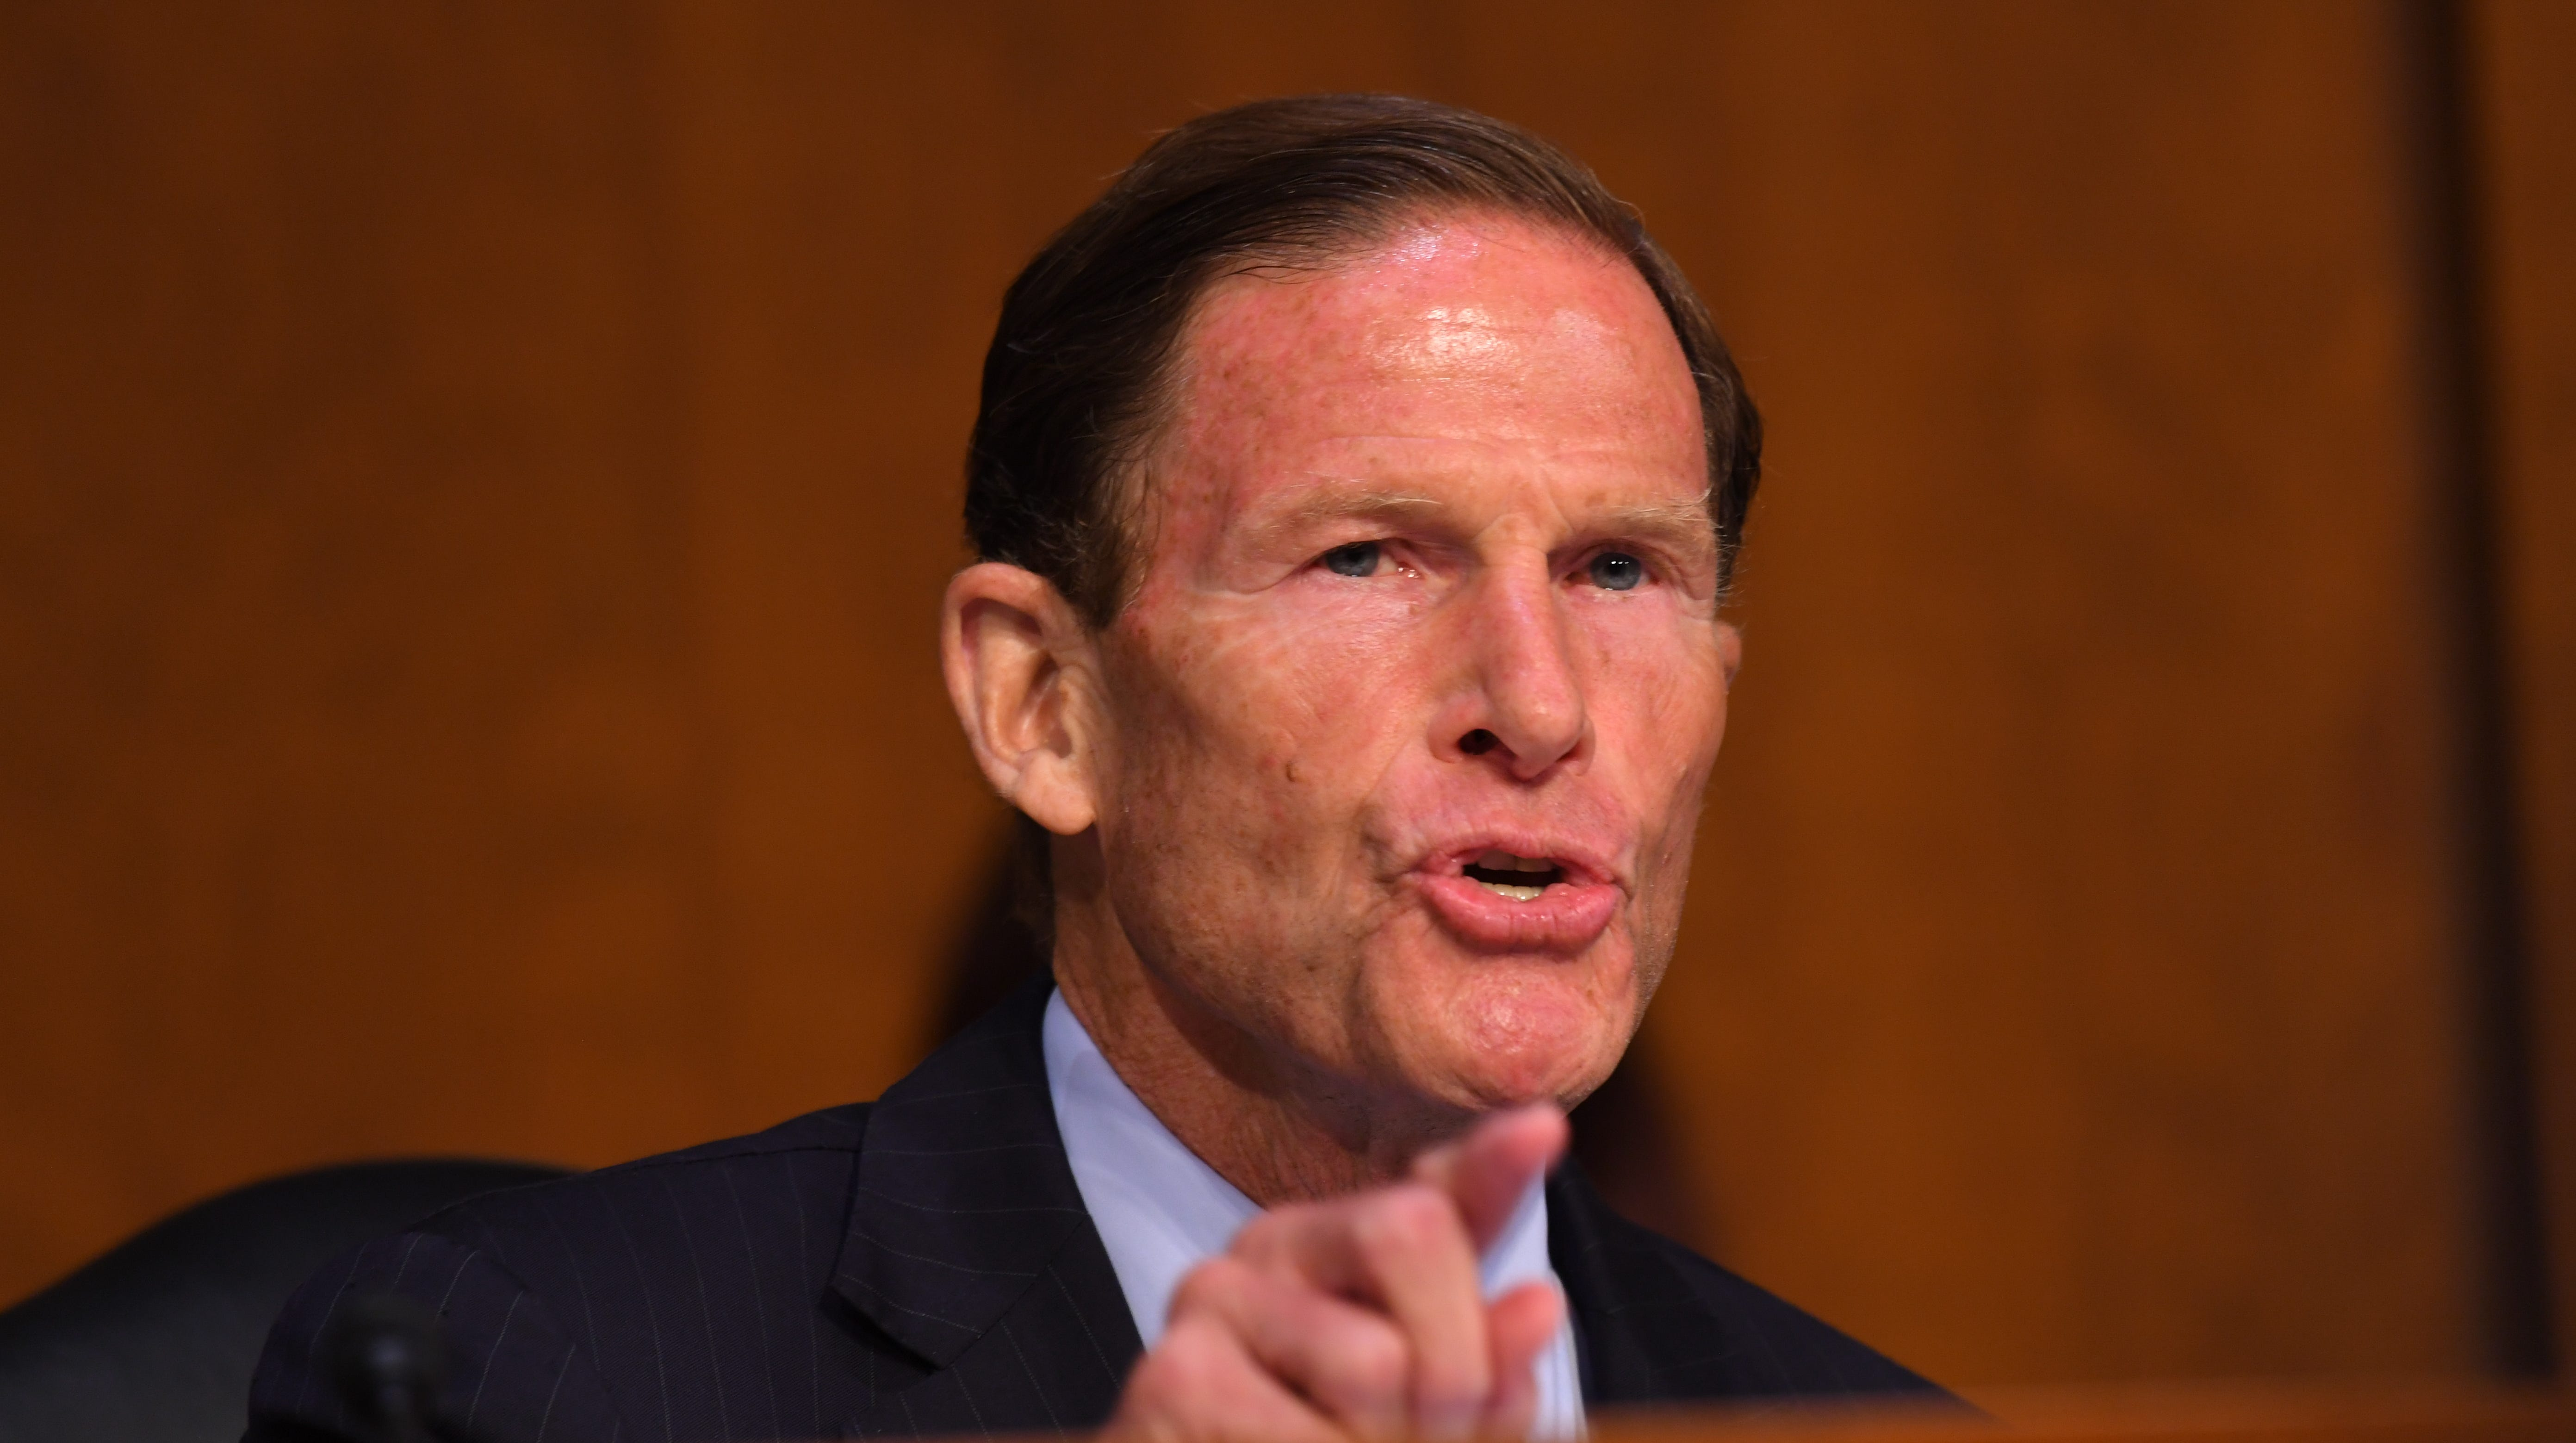 Before hearing on sex abuse in sports, Richard Blumenthal condemns Trump mocking Blasey Ford